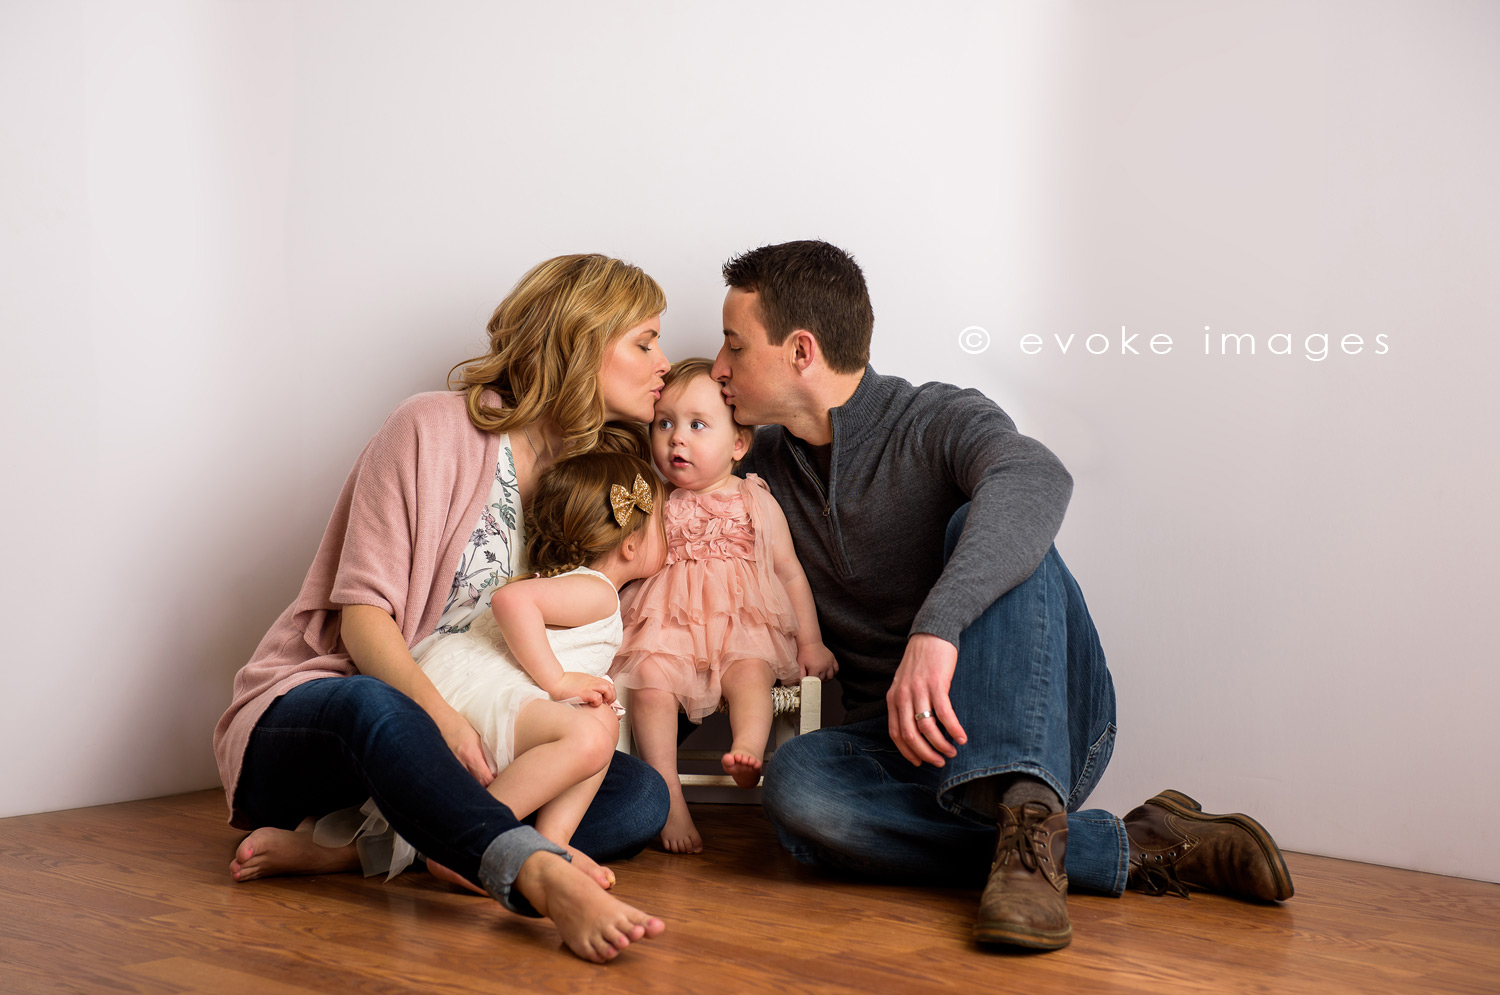 anchorage Alaska studio family photography